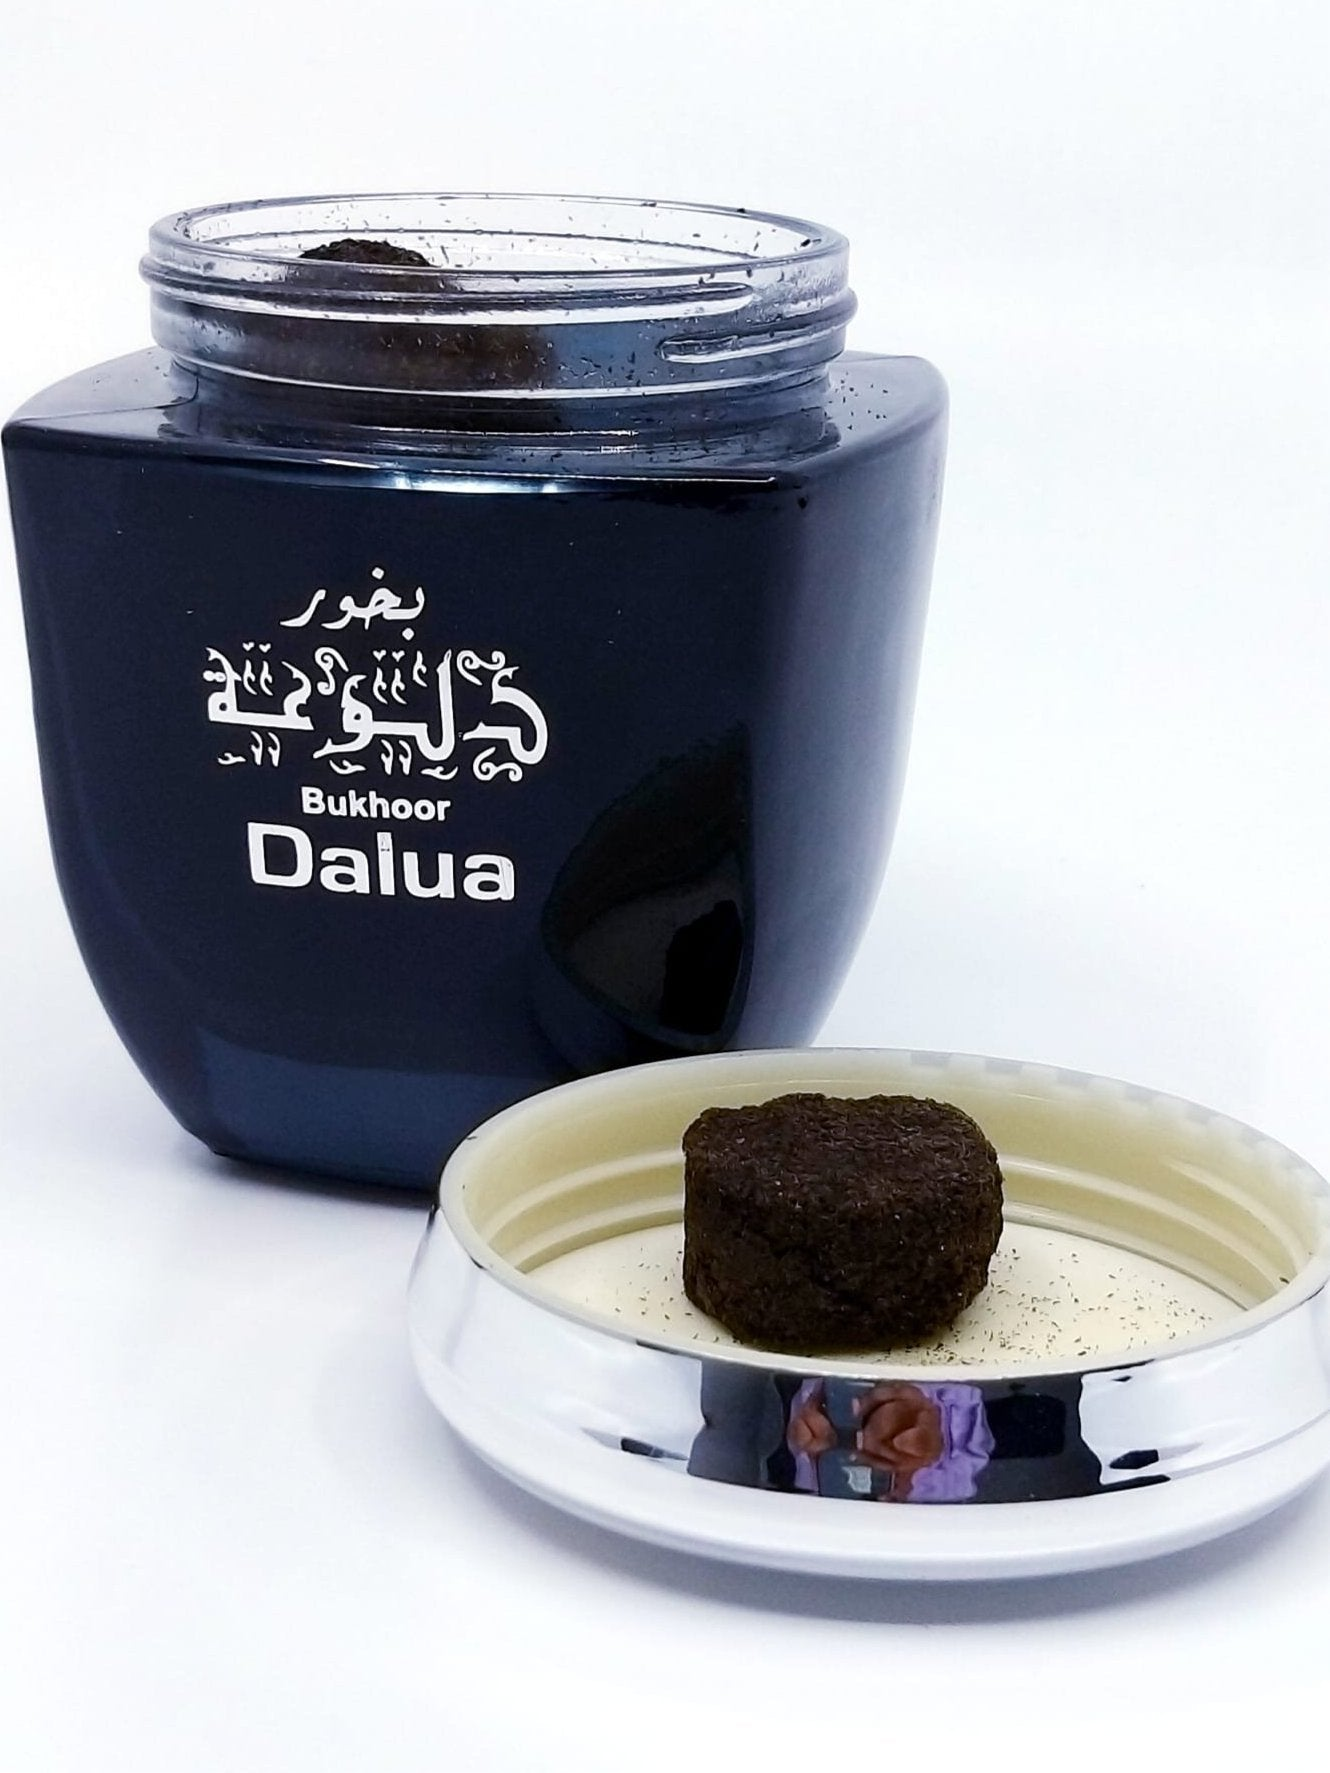 Dalua Bakhoor/ Incense